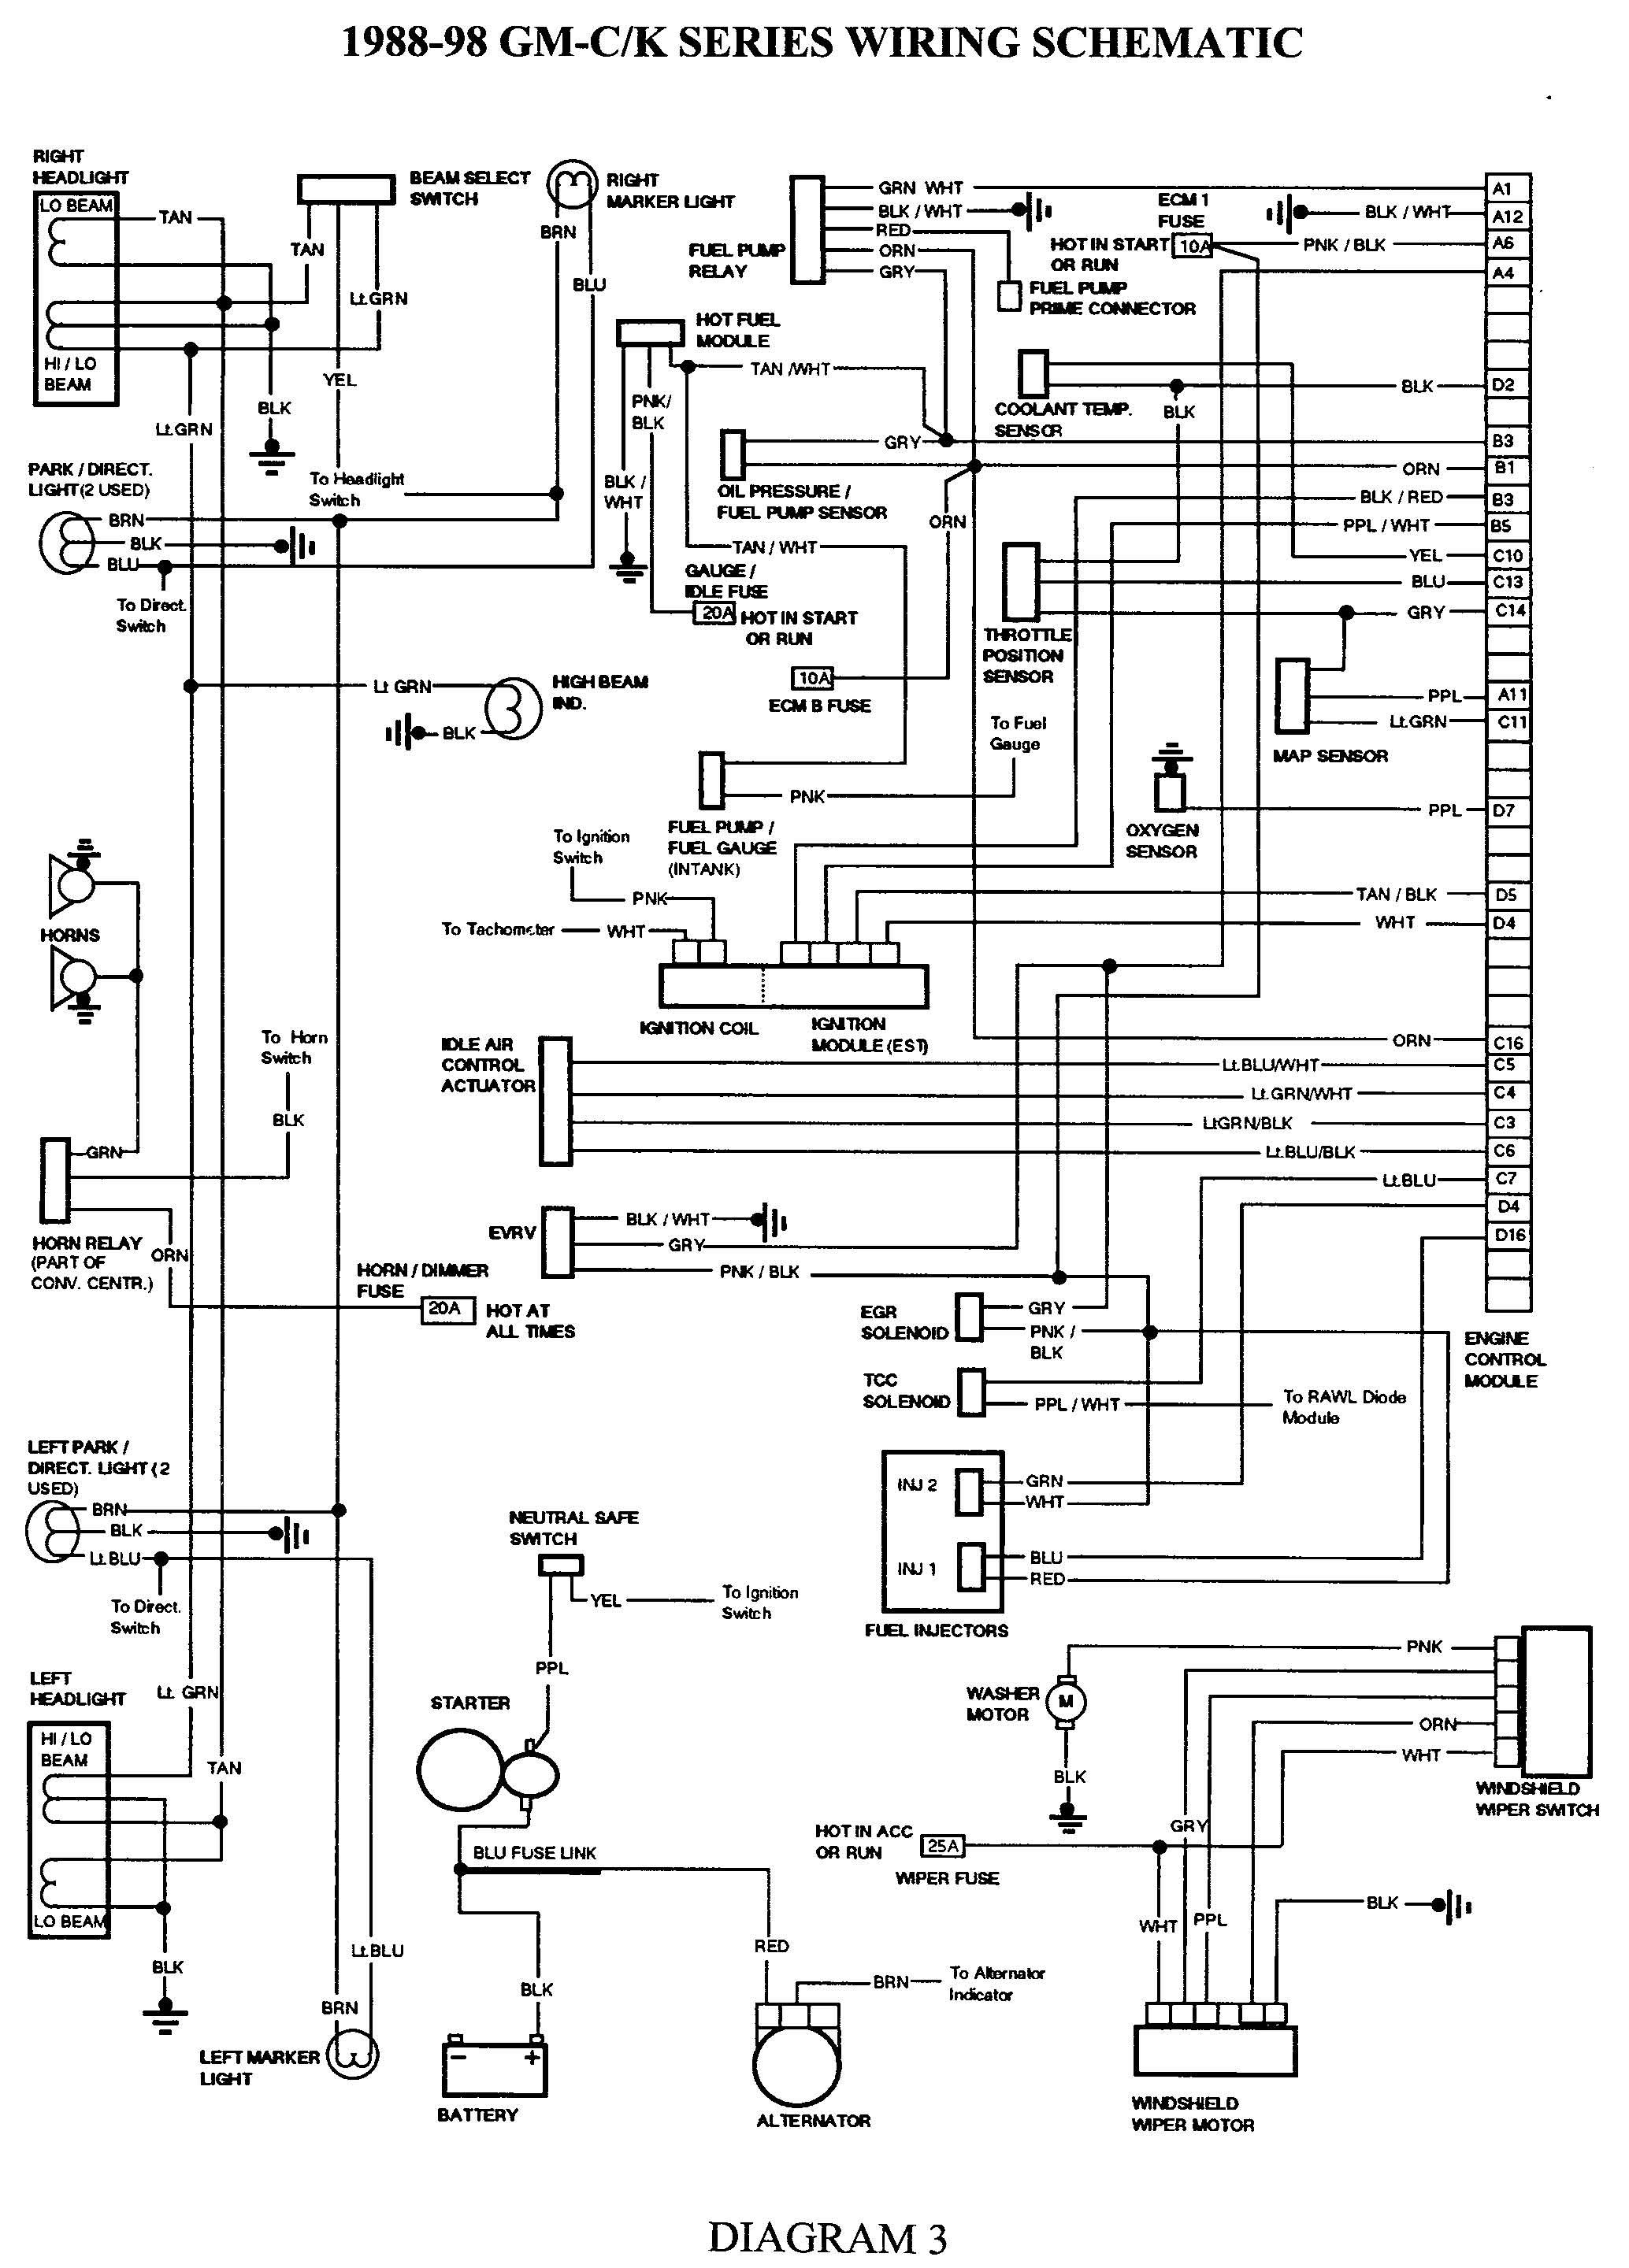 4l80e wiring diagram 92 wiring diagrams 4l80e transmission pcm wiring diagram 4l80e wiring diagram 92 [ 2068 x 2880 Pixel ]